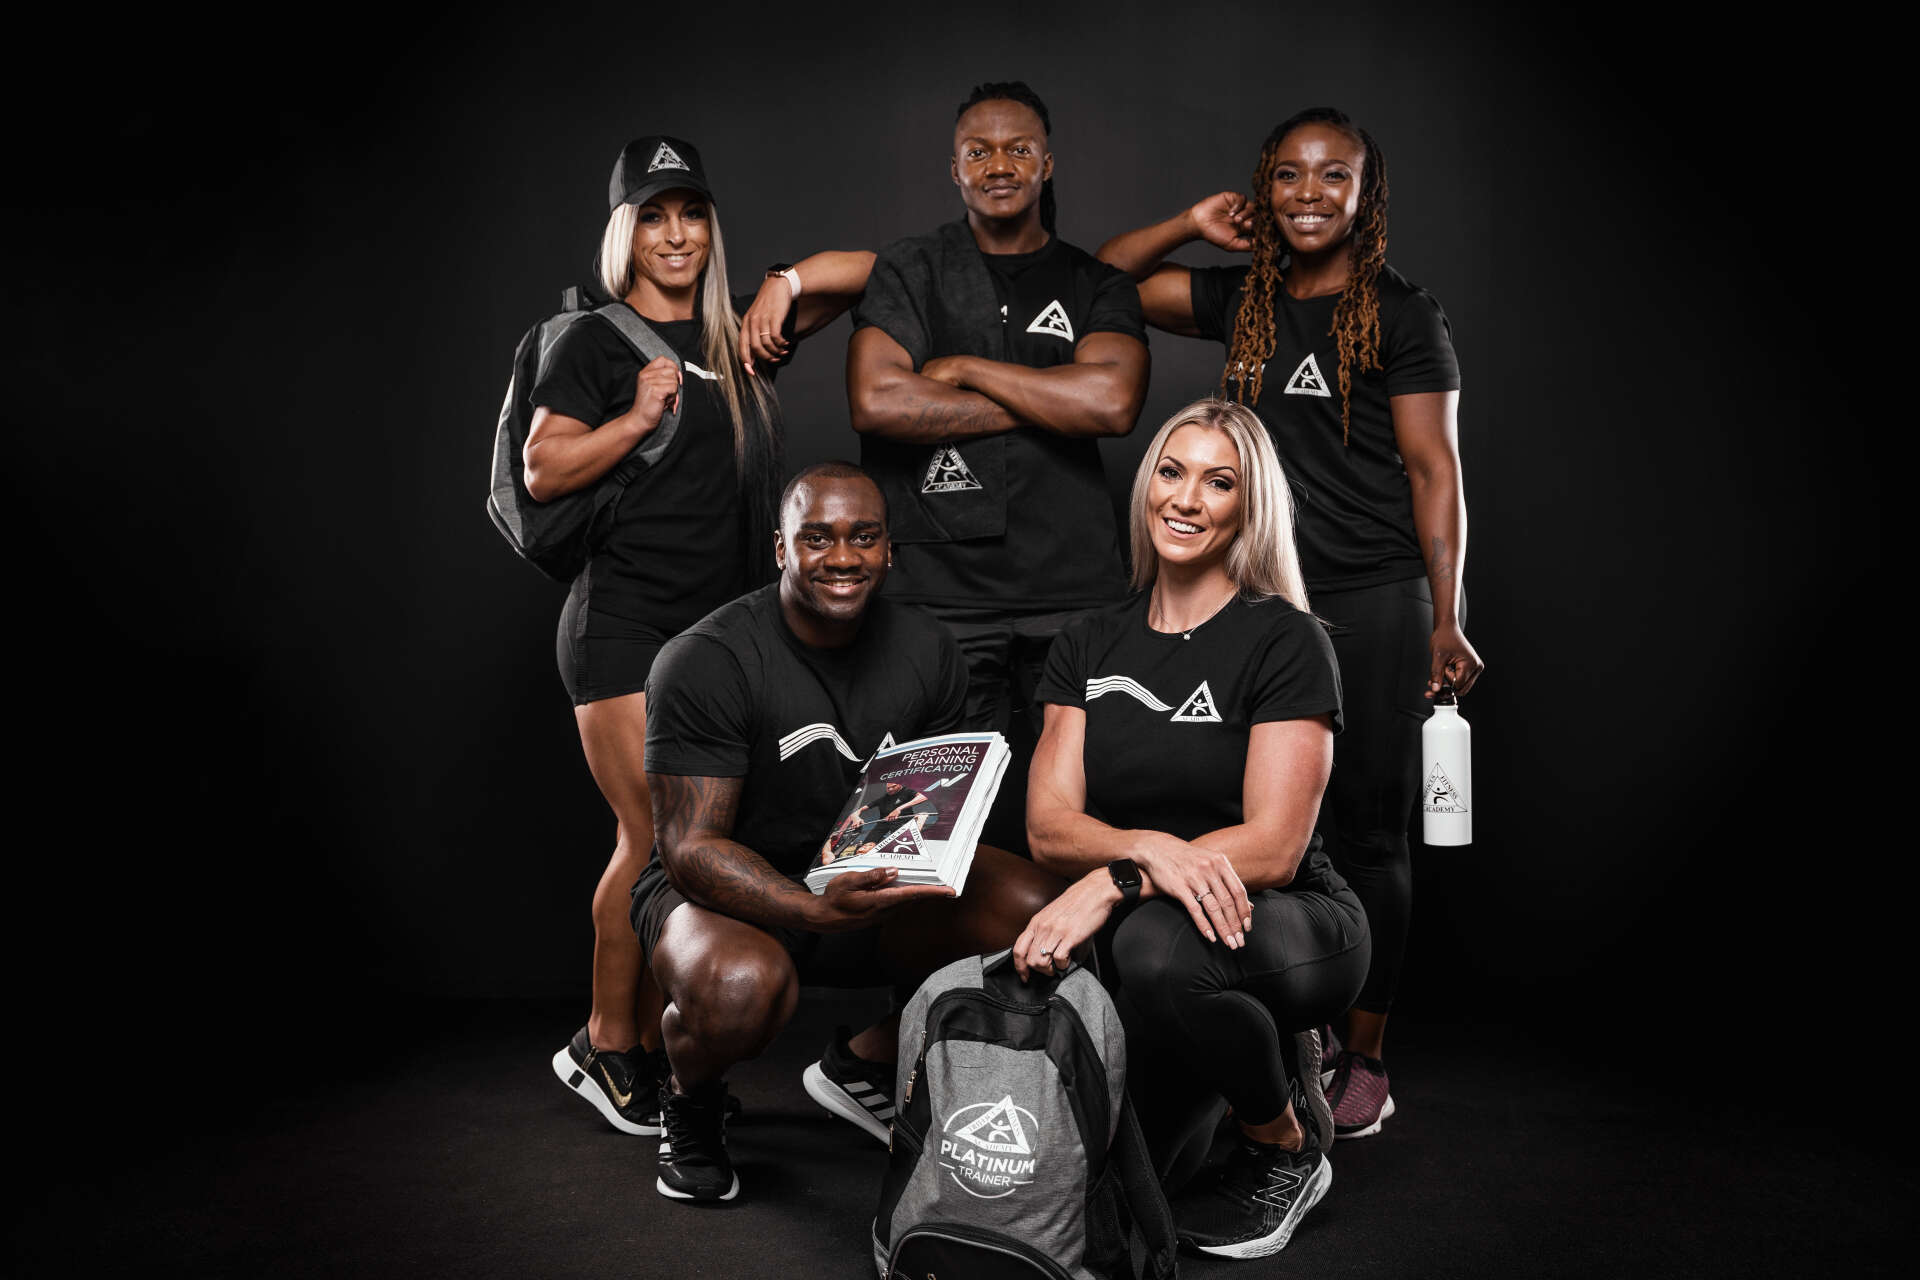 Trifocus Fitness Academy - fit